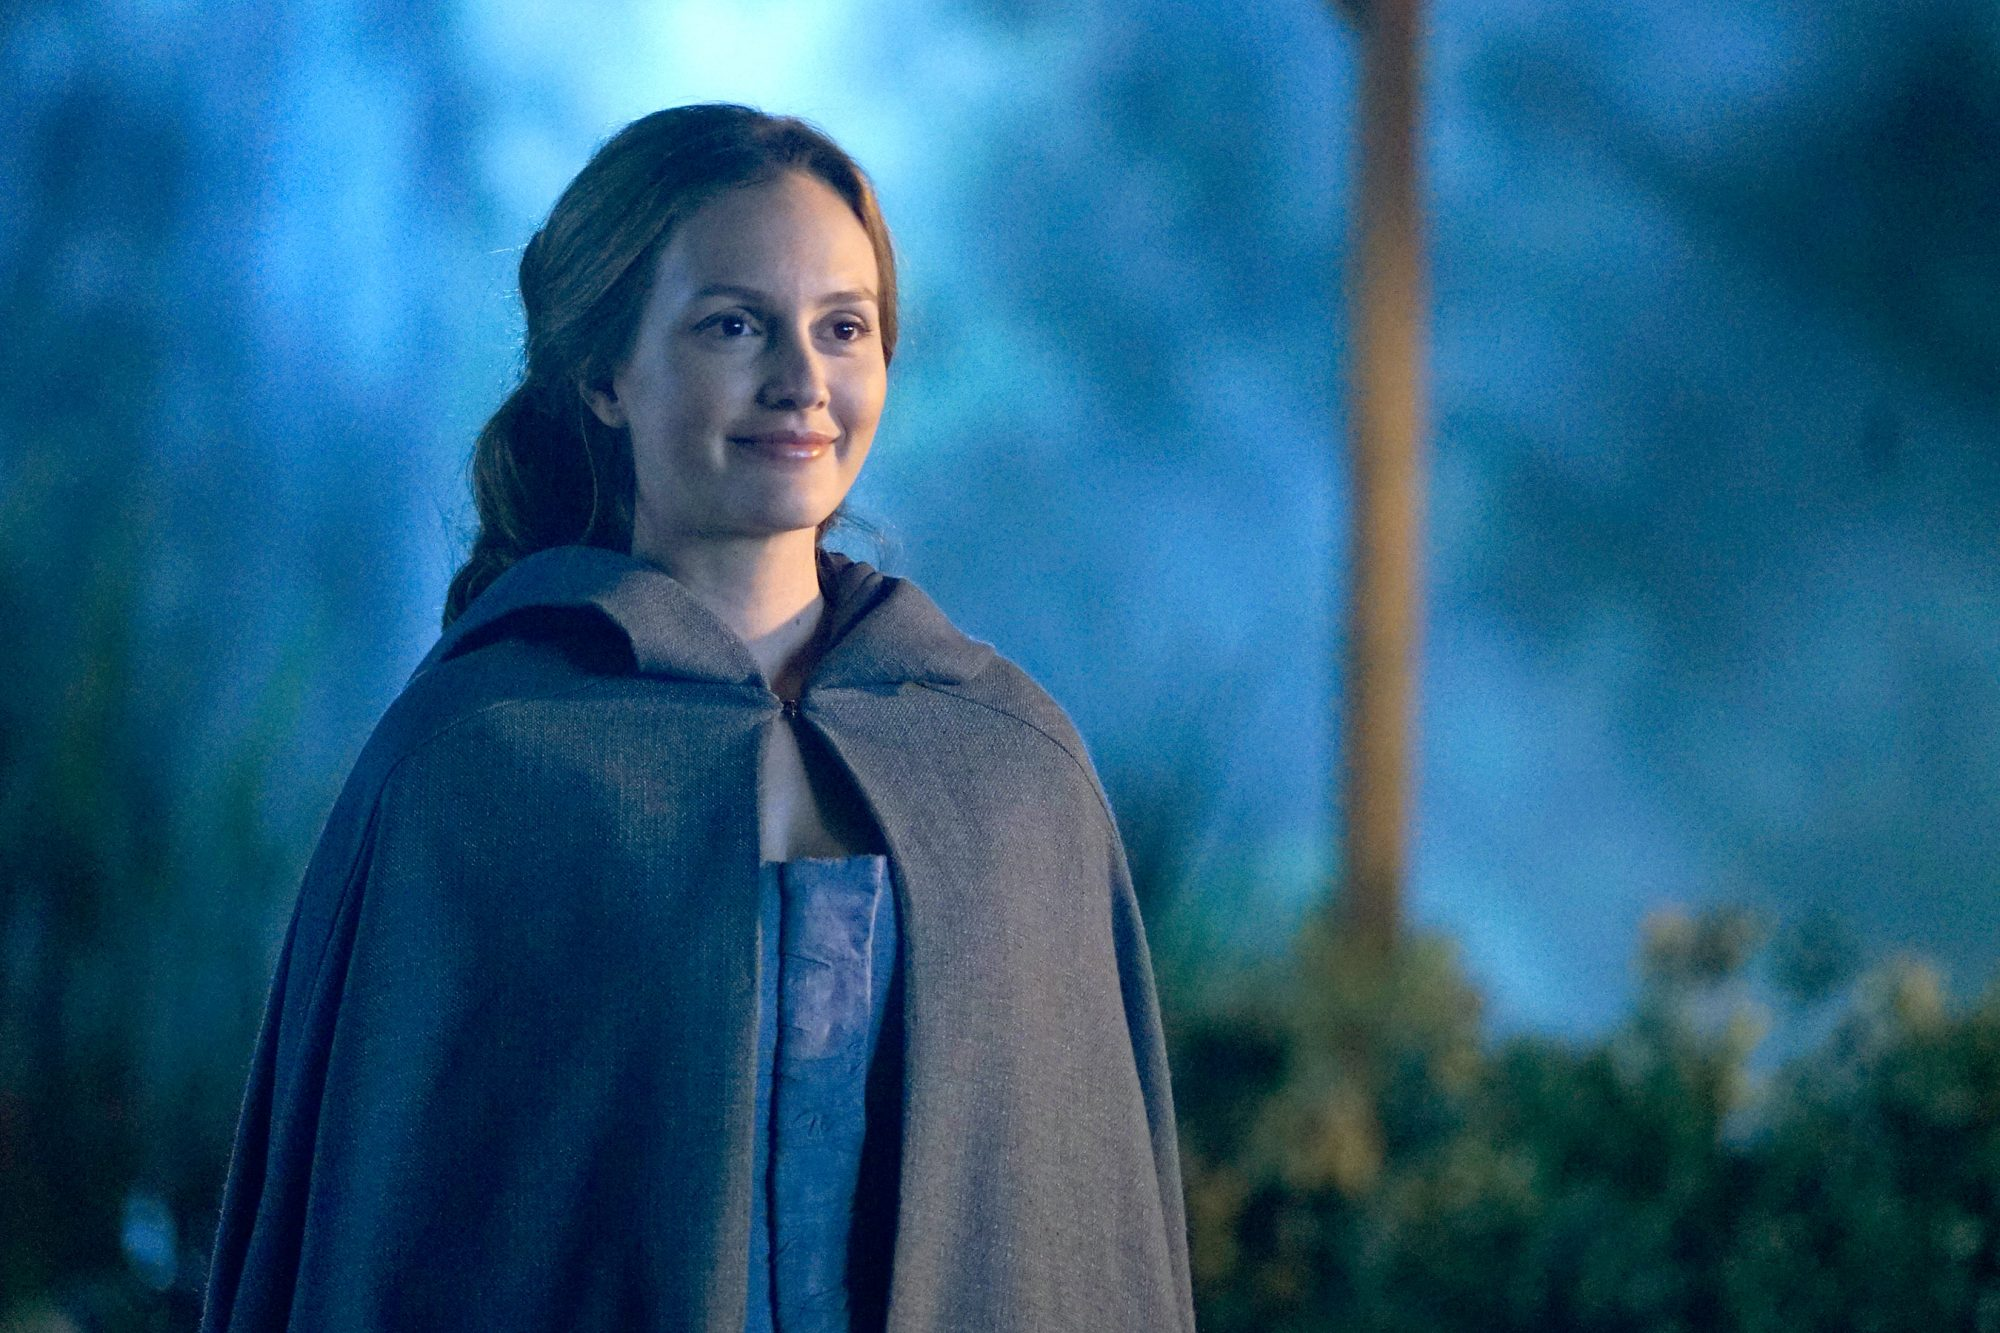 Leighton Meester in Making History